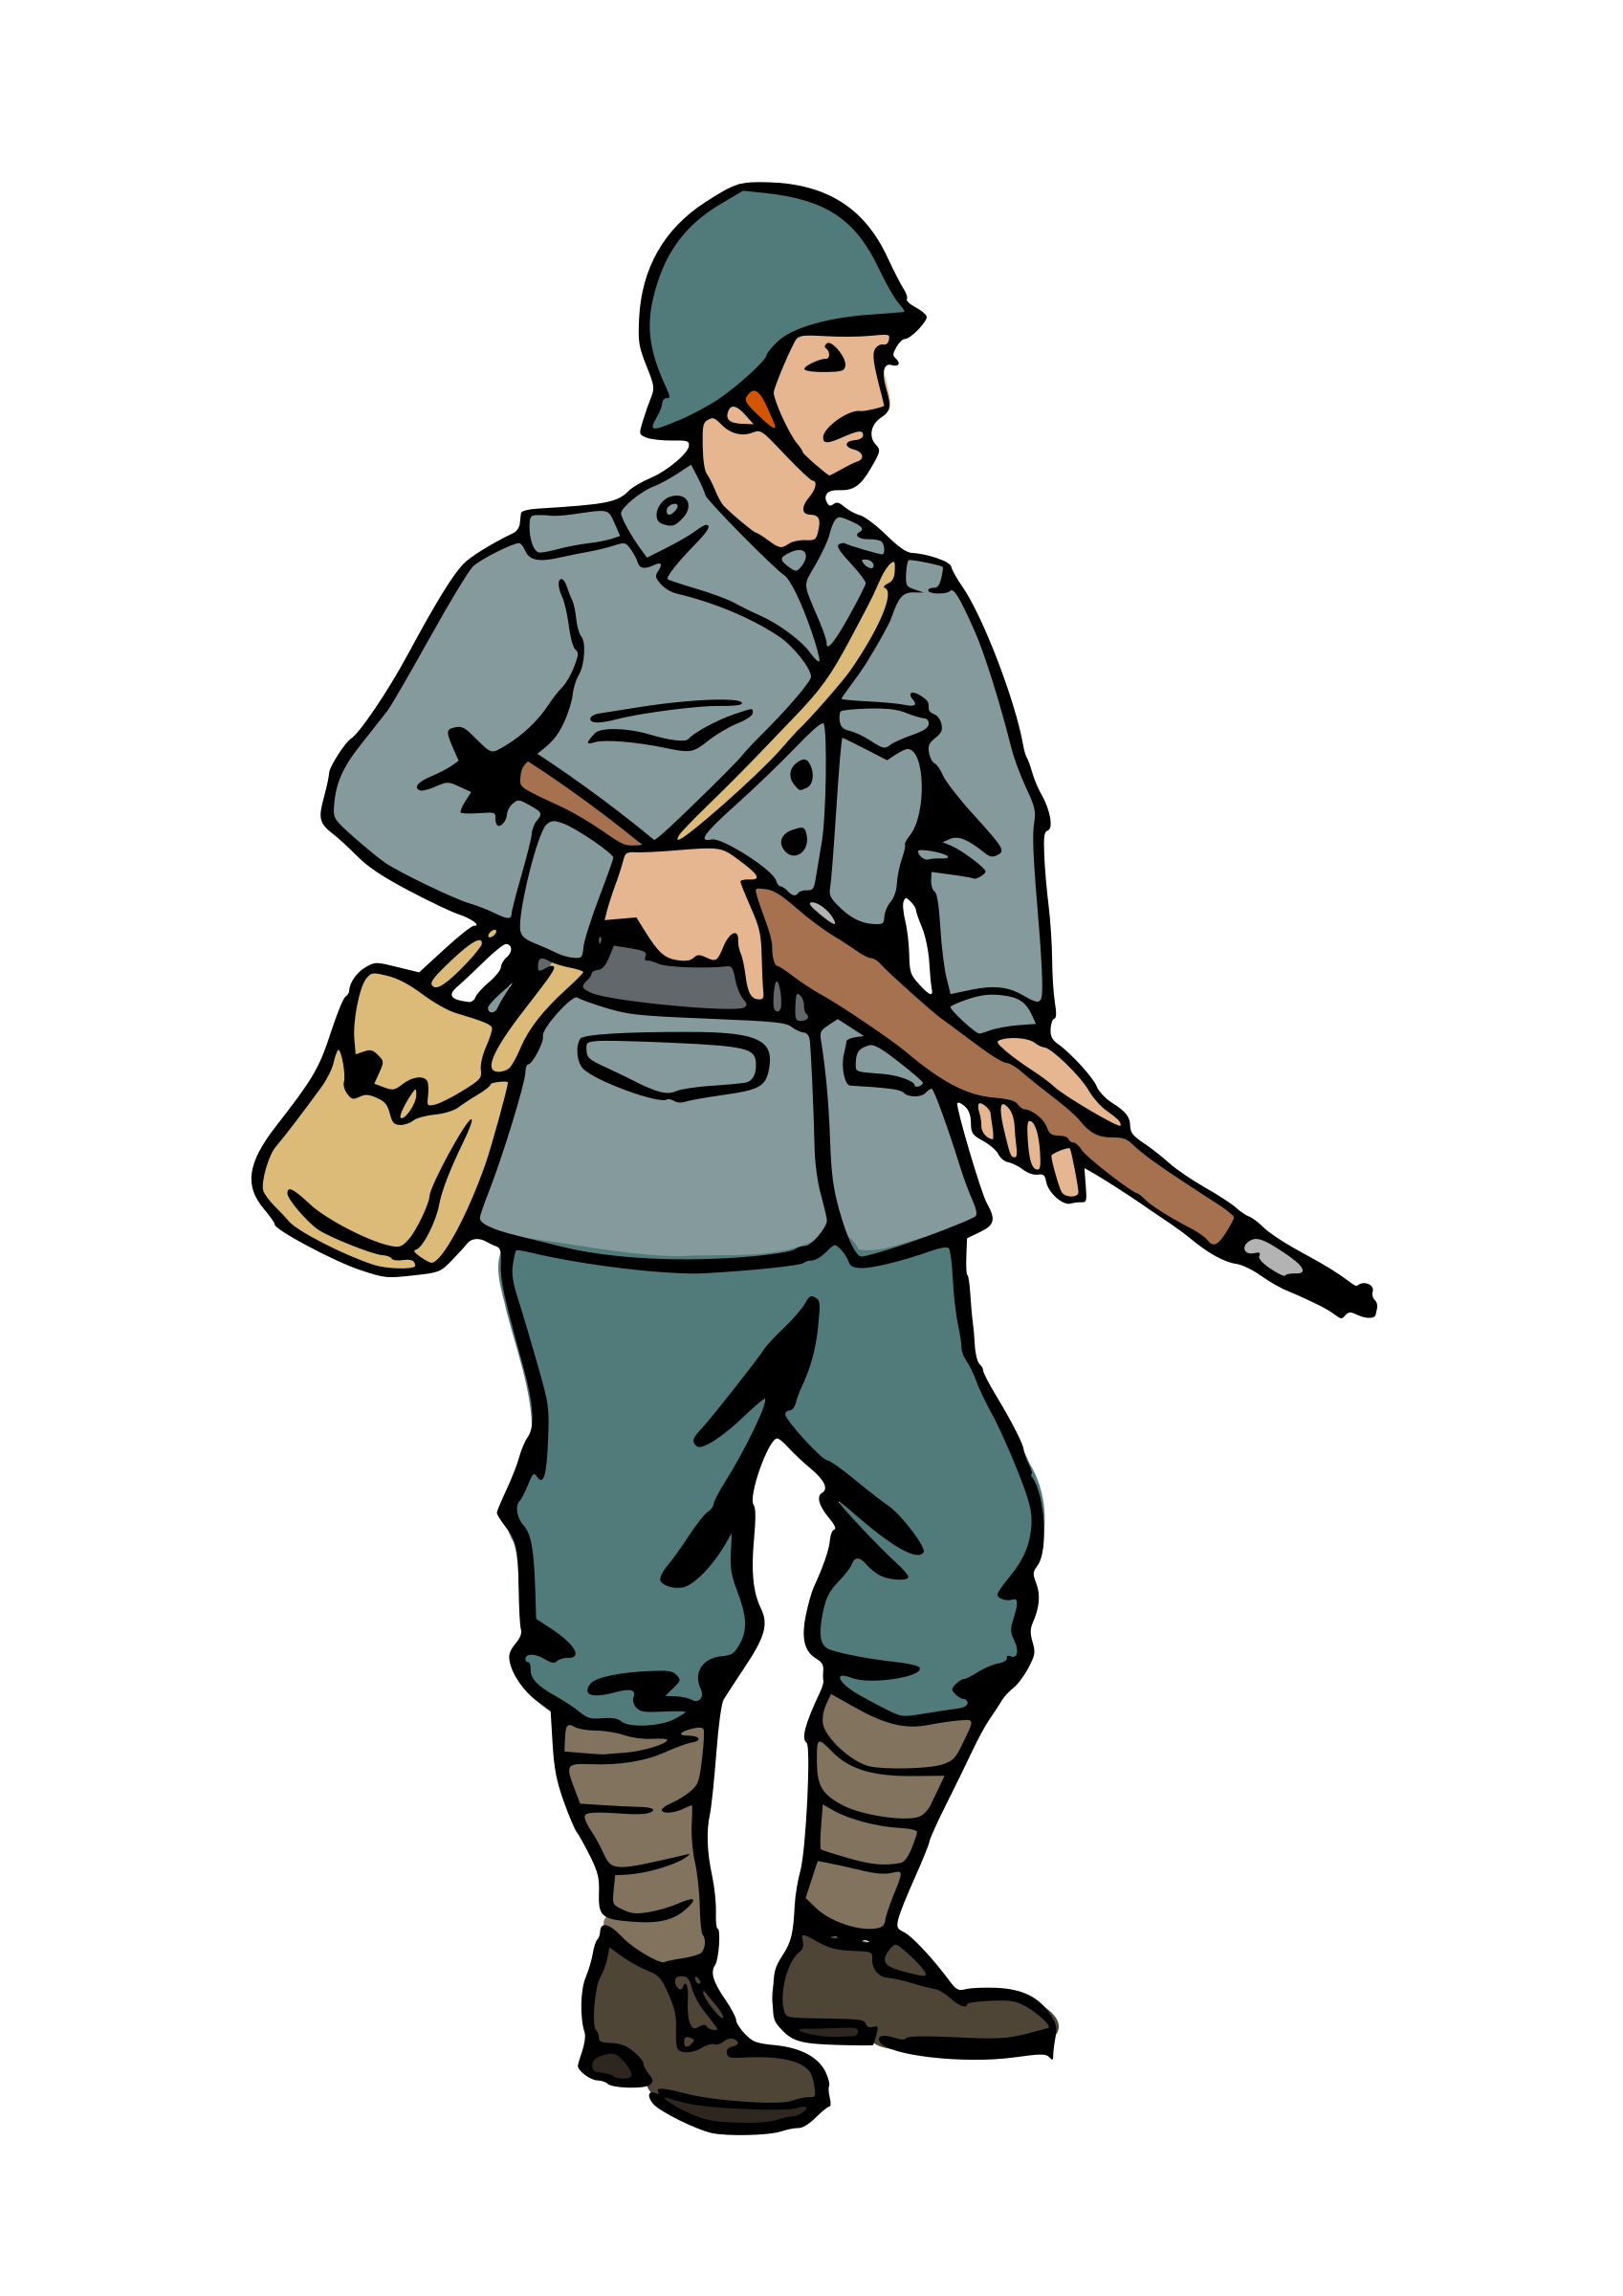 graphic transparent download Ww soldier silhouette at. Wars clipart medieval army